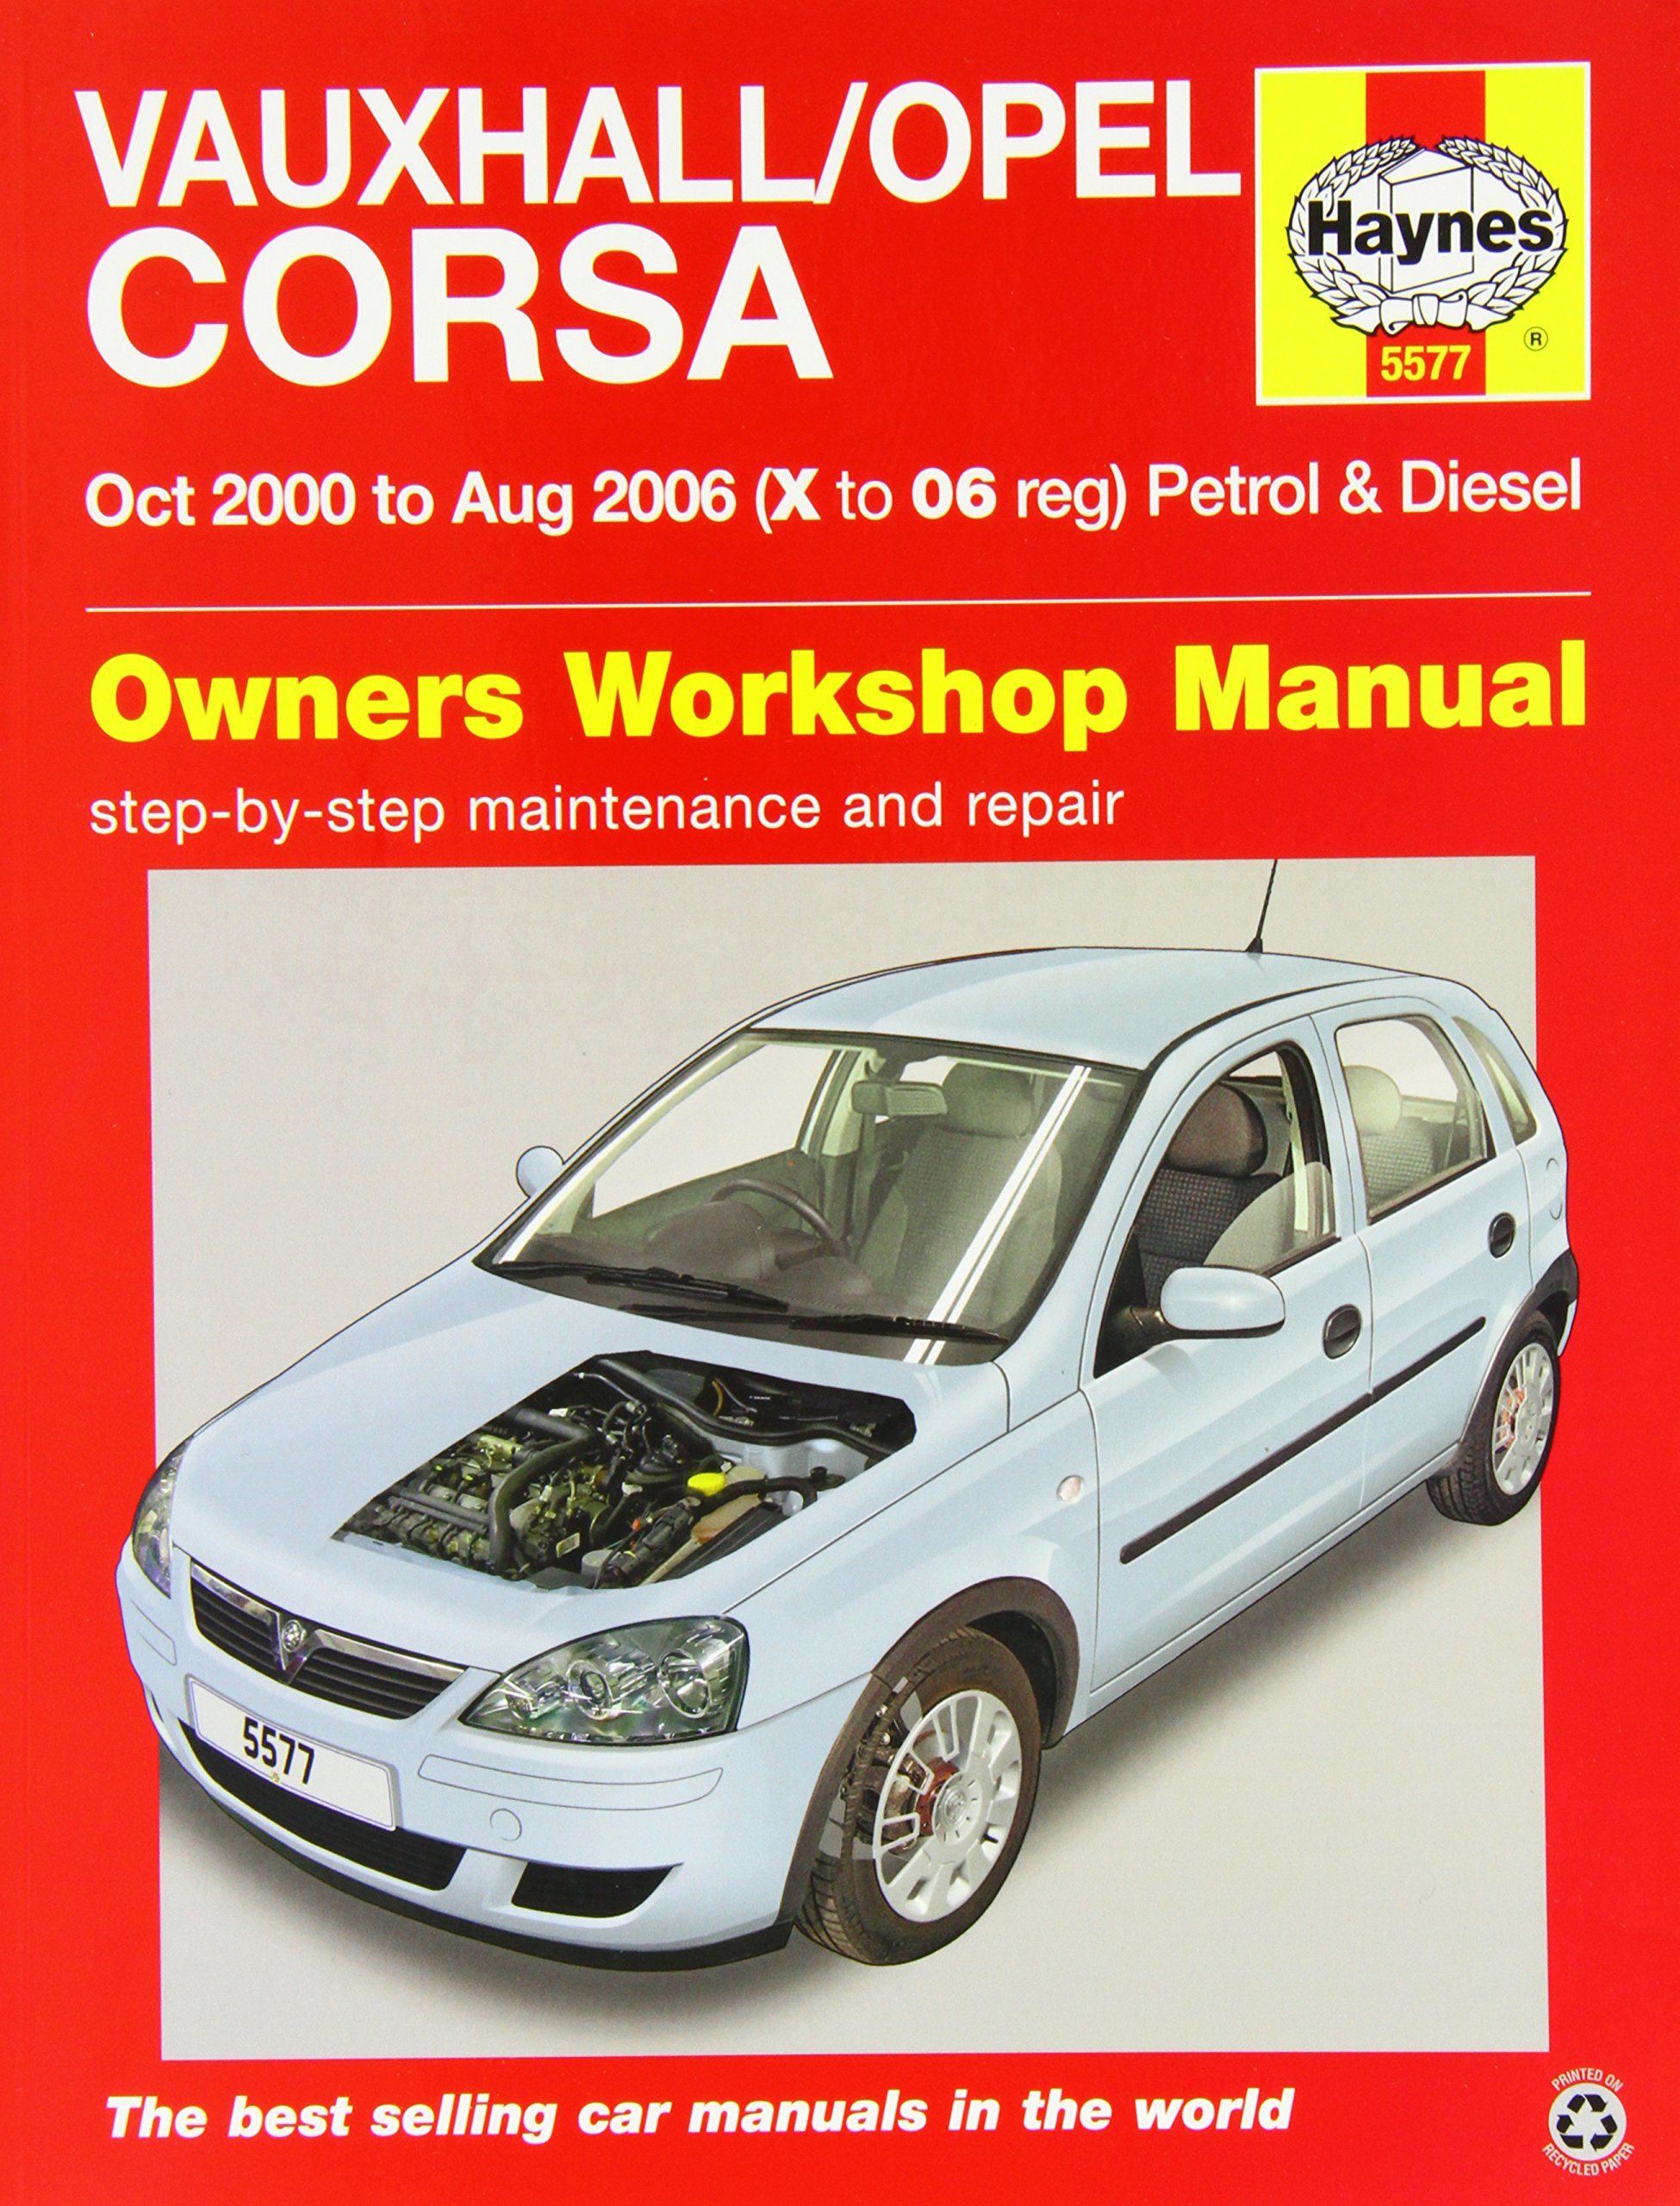 Vauxhall/Opel Corsa Service and Repair Manual: 2000-2006 Haynes Service and Repair Manuals: Amazon.es: A. K. Legg, Peter T. Gill, John S. Mead: Libros en ...